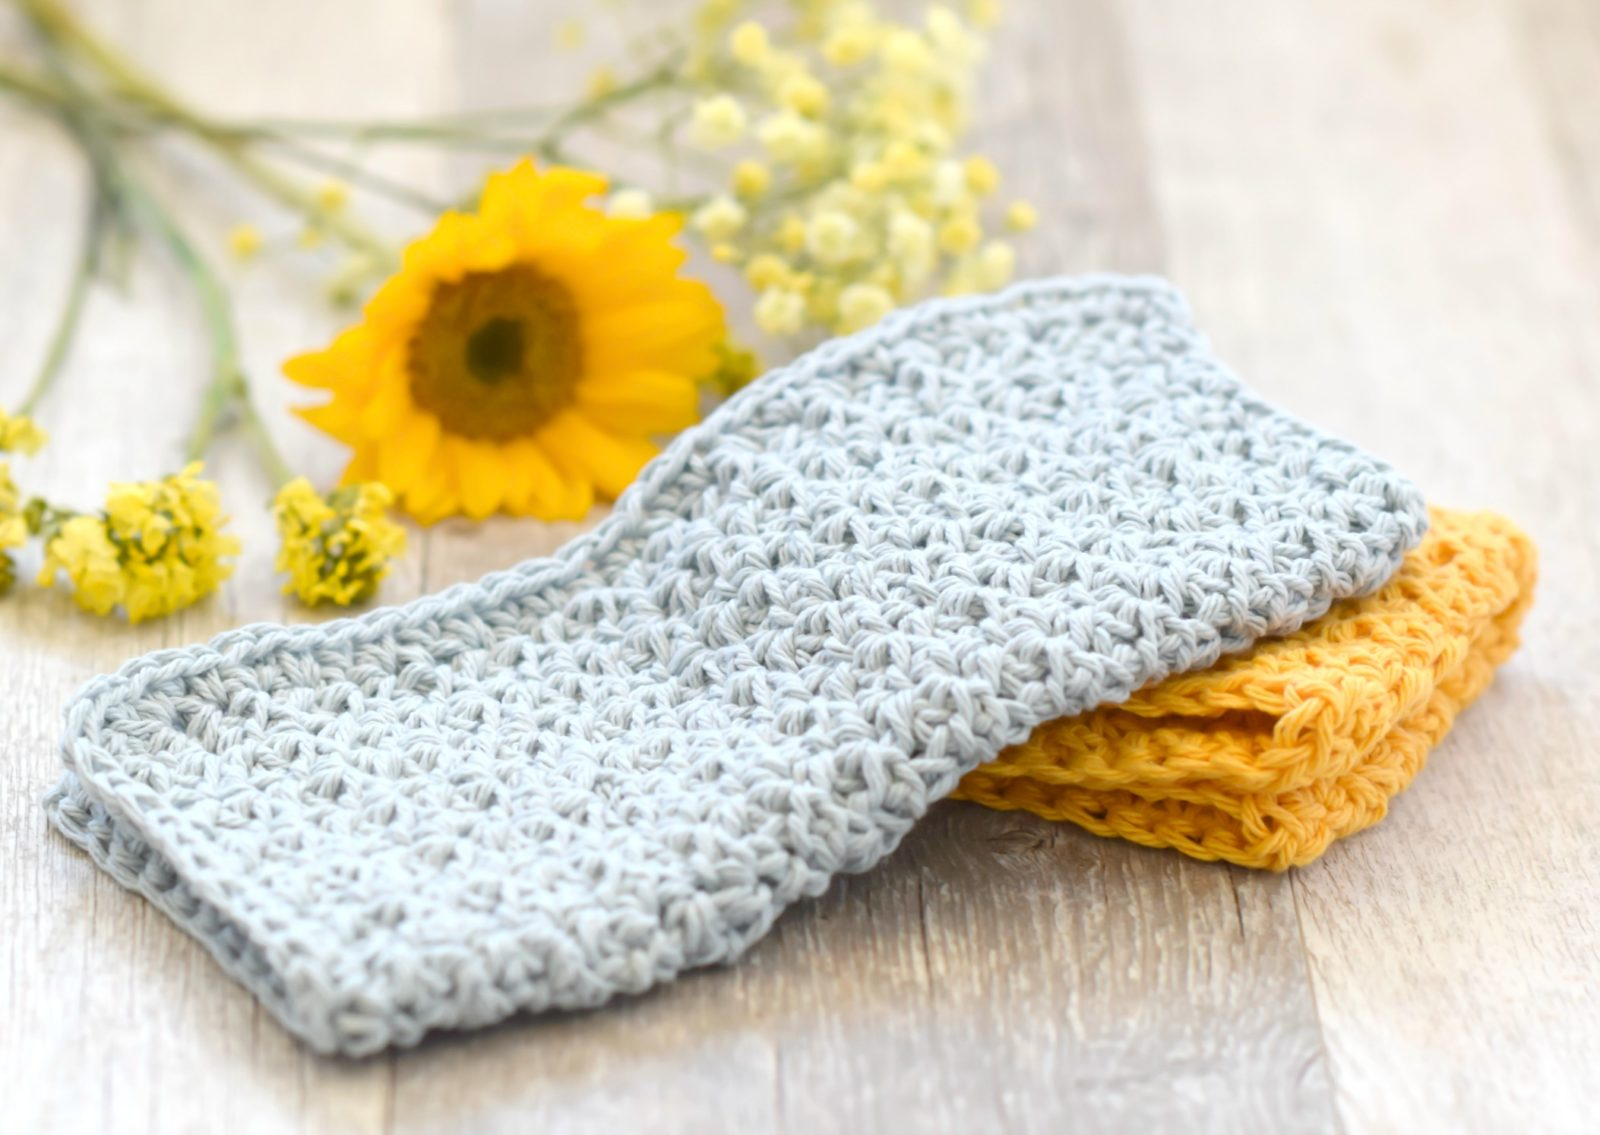 Kitchen Crochet Patterns: Farmhouse Washcloth by Mama in a Stitch